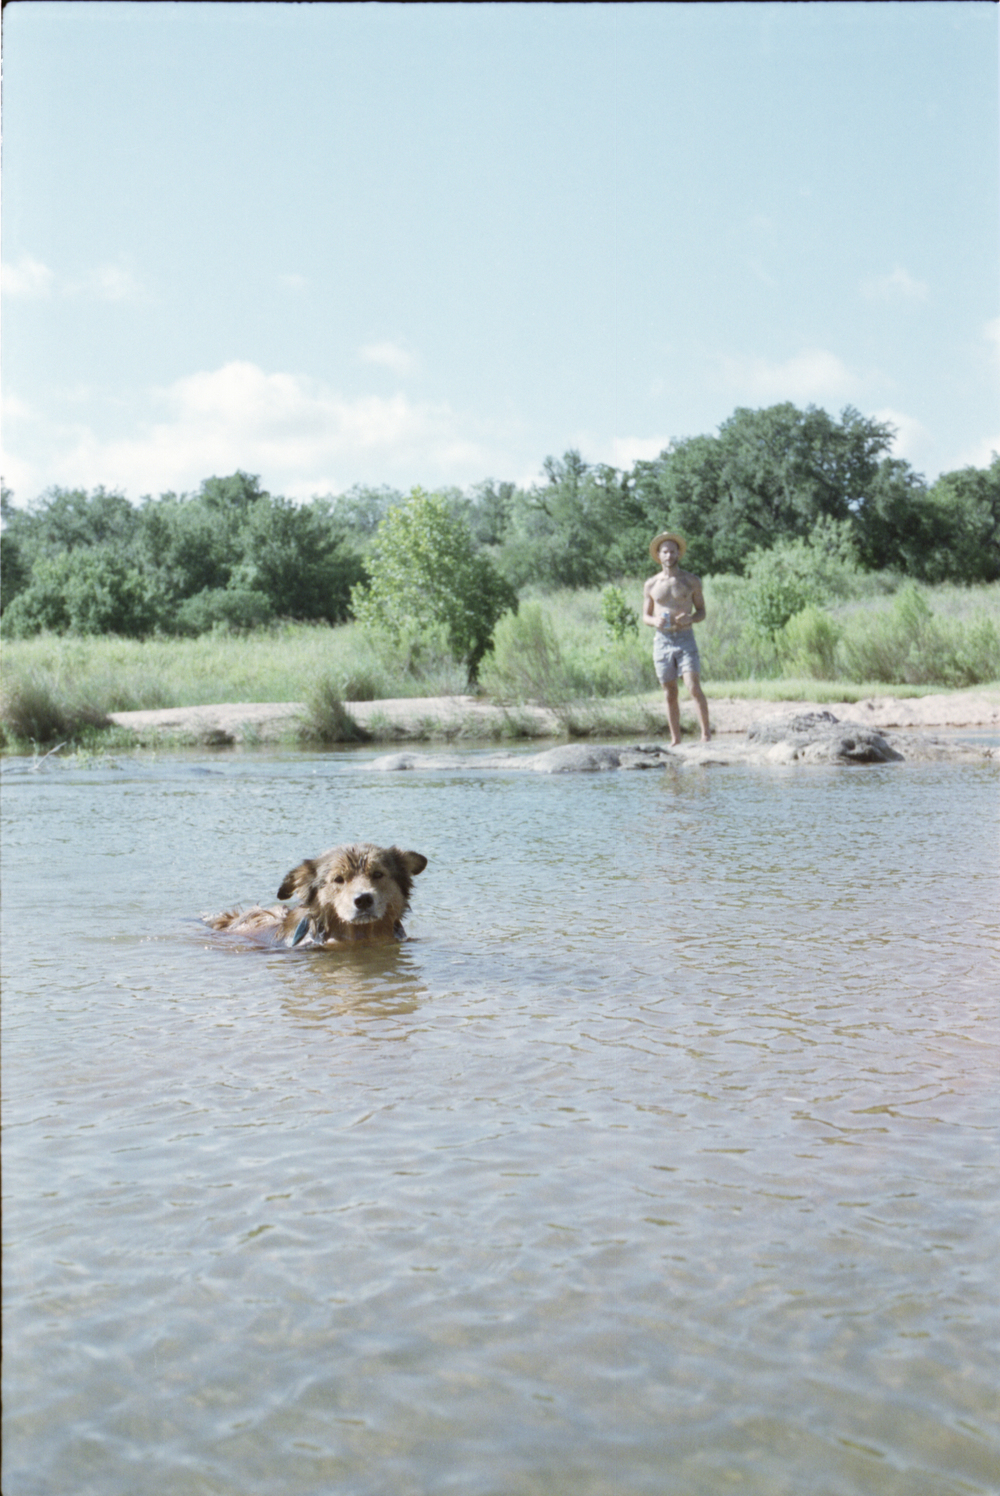 llano river texas camping swim swimming film 35mm pawlowski america yall whatley dog